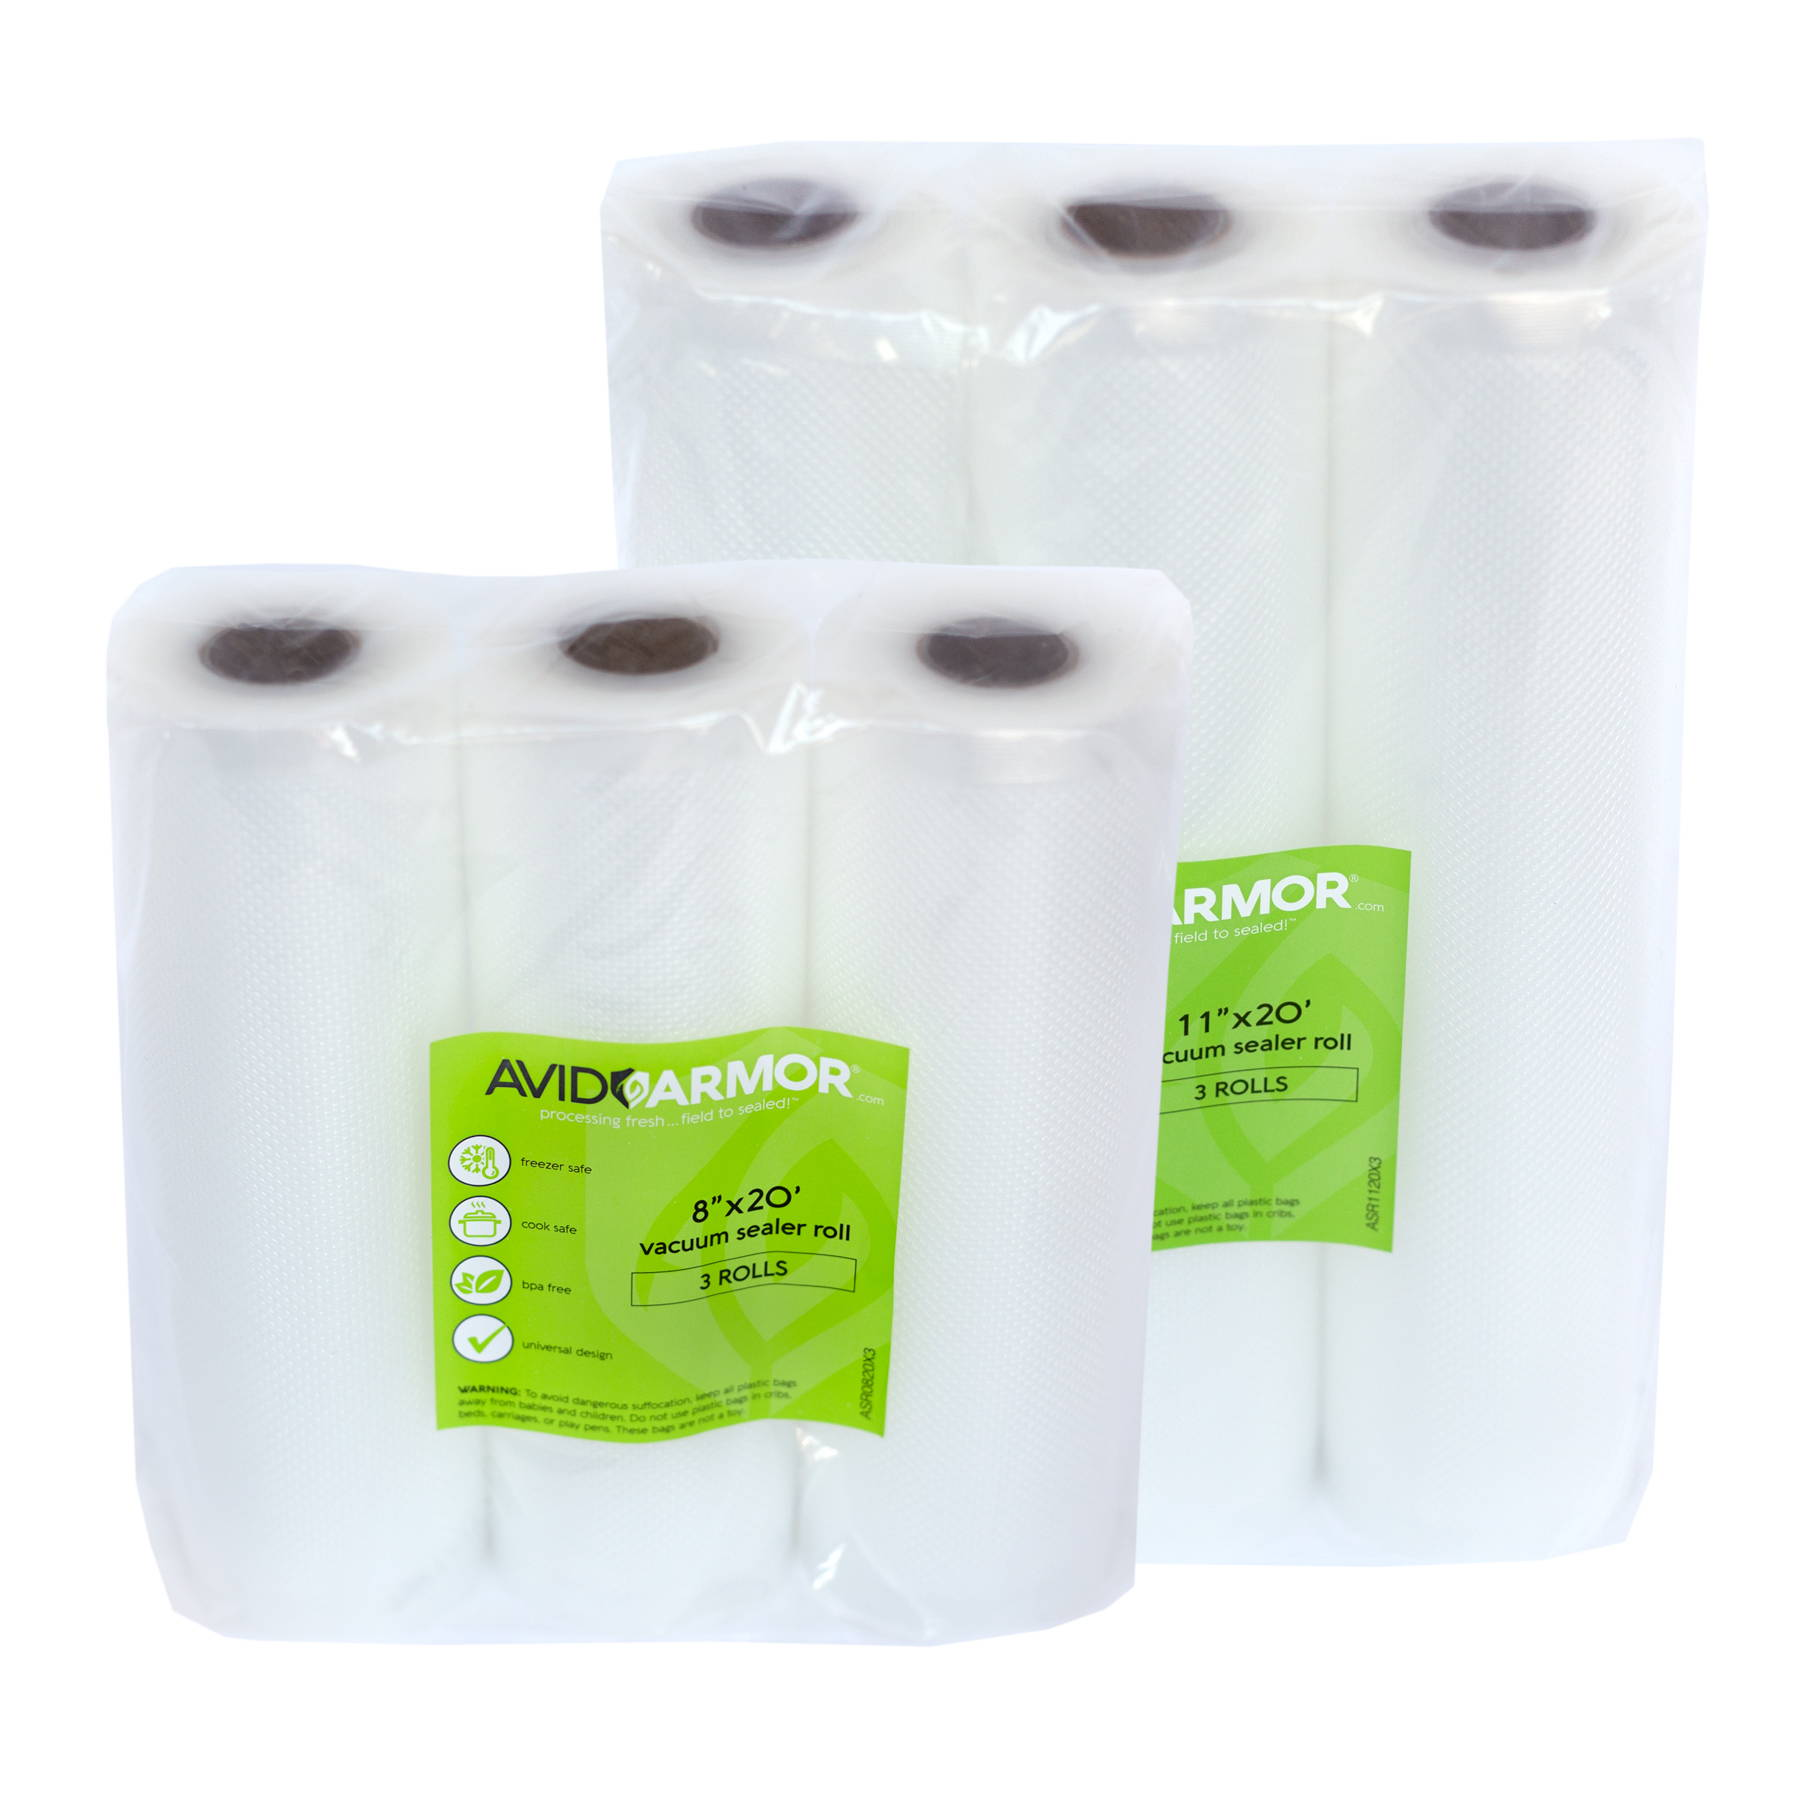 8x20 and 11x20 Vacuum Sealer Rolls